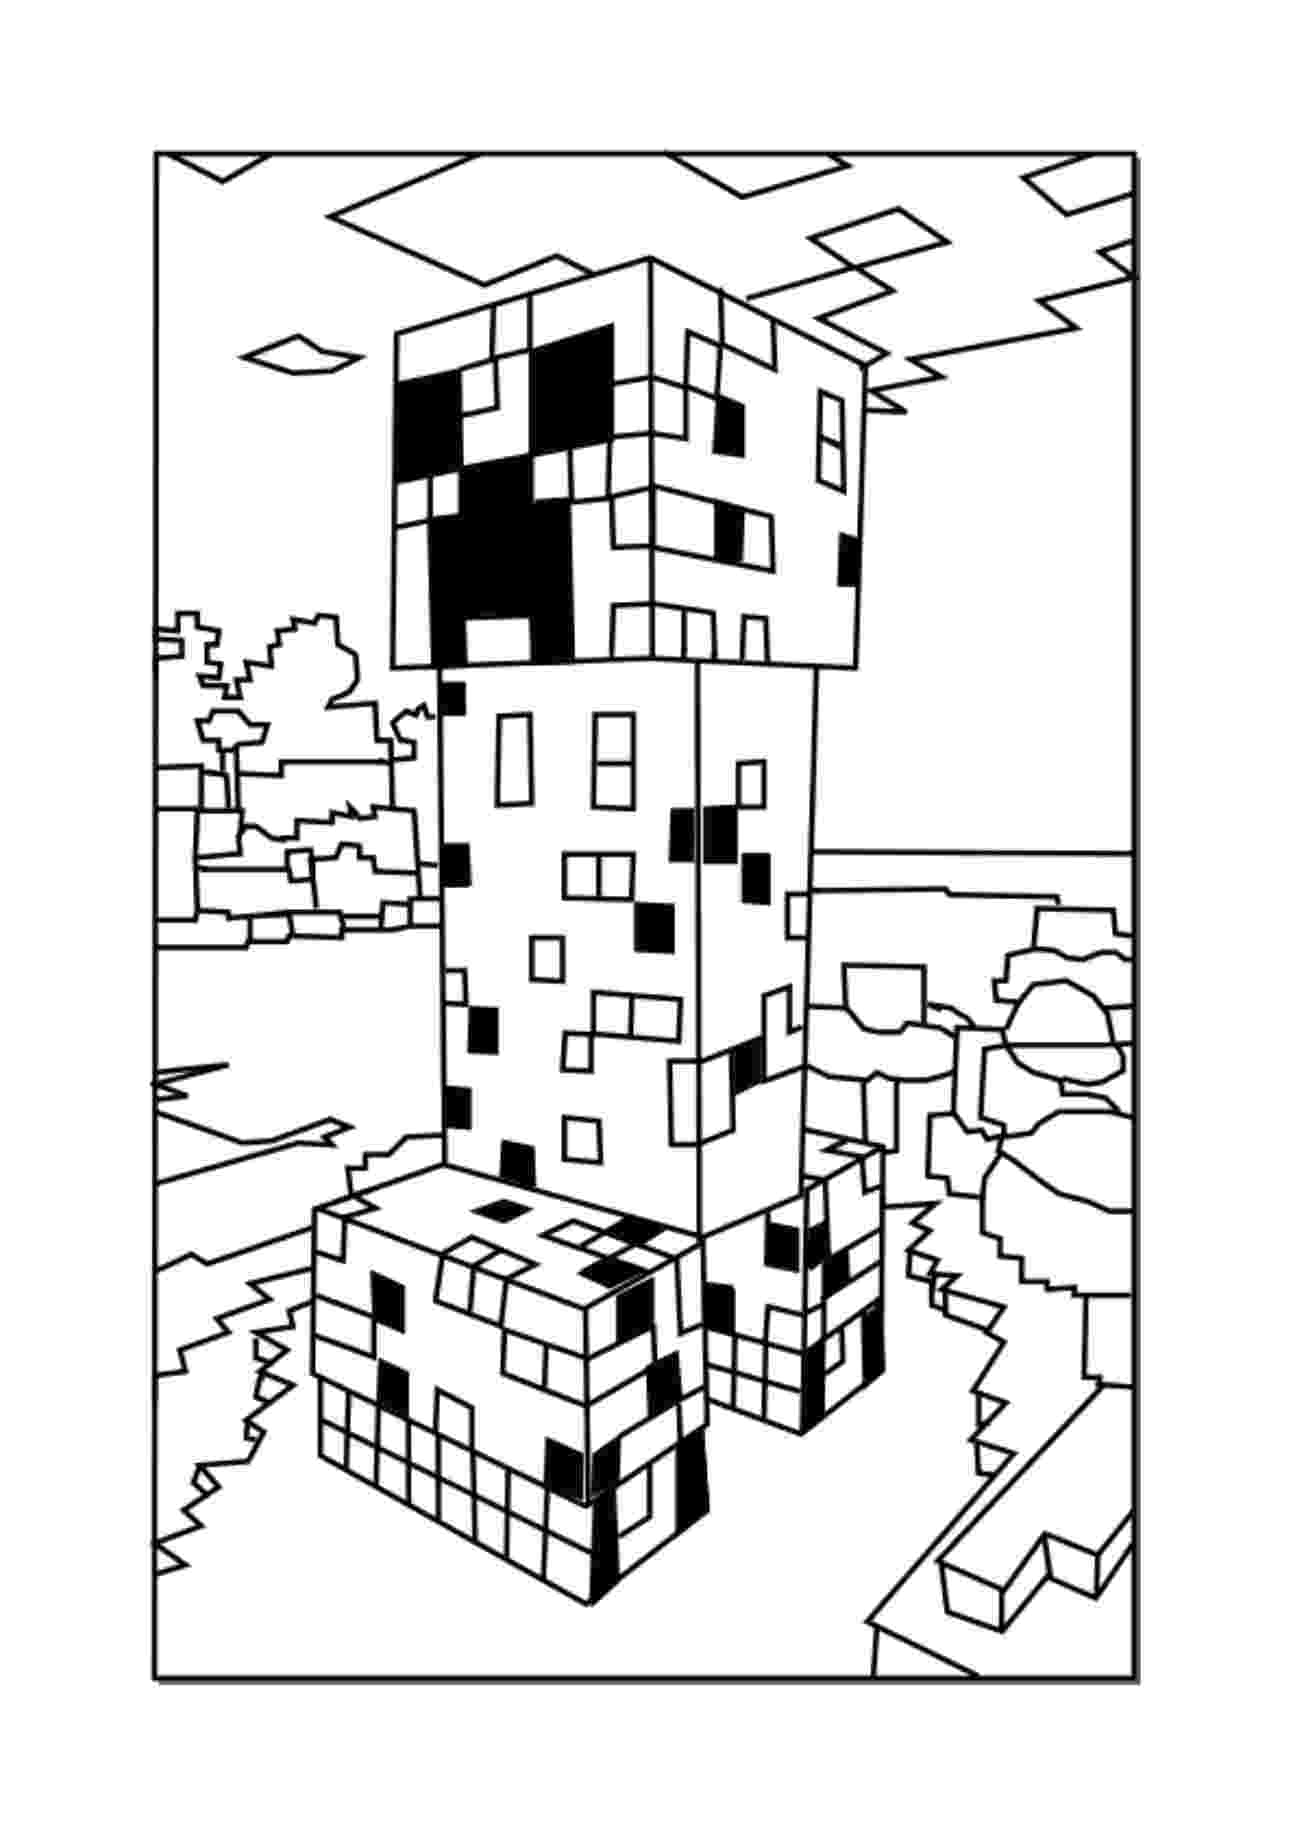 minecraft images printable 37 free printable minecraft coloring pages for toddlers minecraft images printable